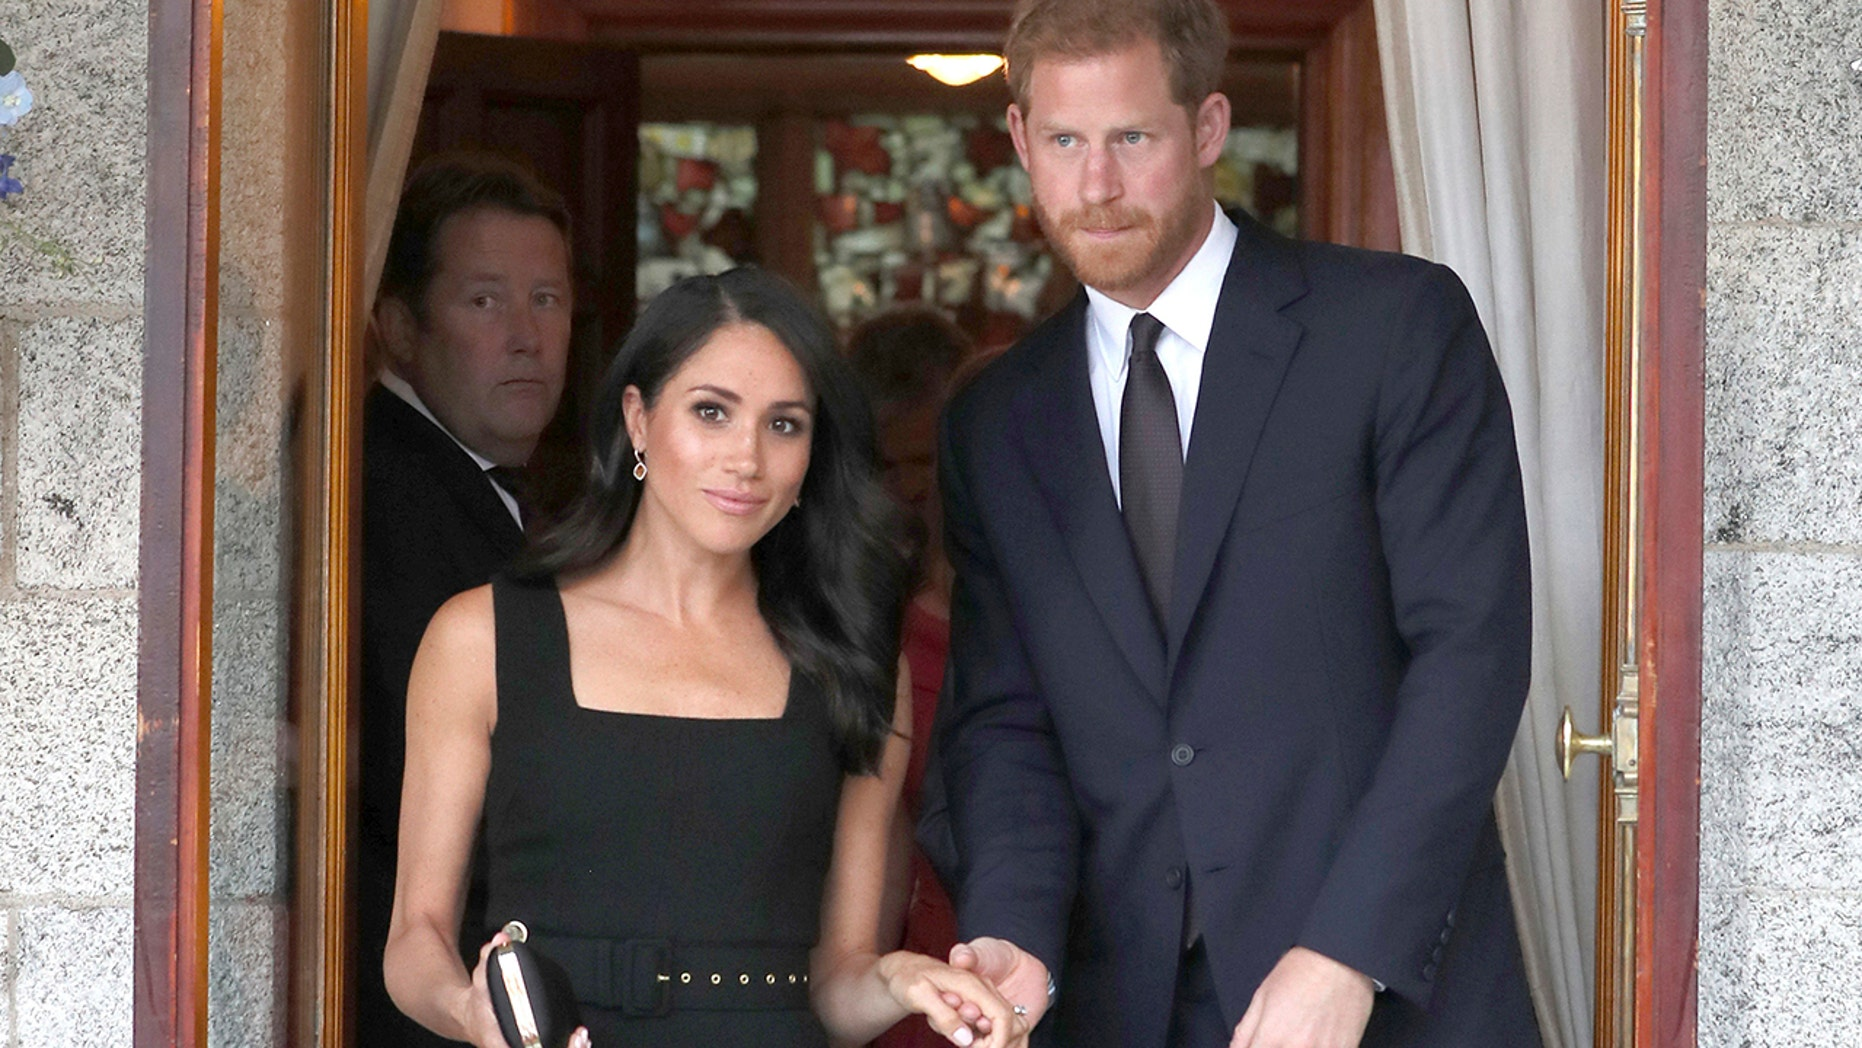 Meghan Markle and Prince Harry reportedly found a weekend country home foto